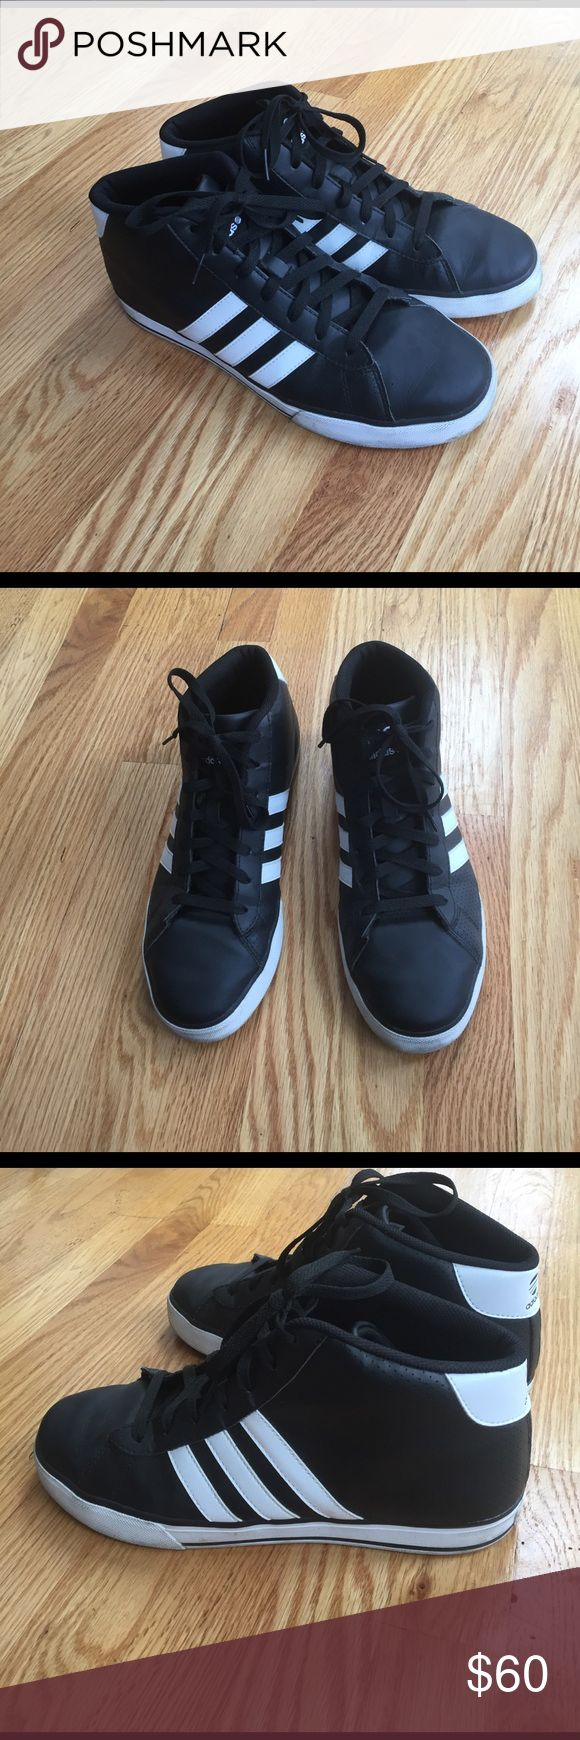 Men's Neo Adidas sneakers size 10 Good condition men's Adidas sneakers. Worn a handful of times. Size 10. Ortholite comfort foam inside. Adidas Shoes Sneakers